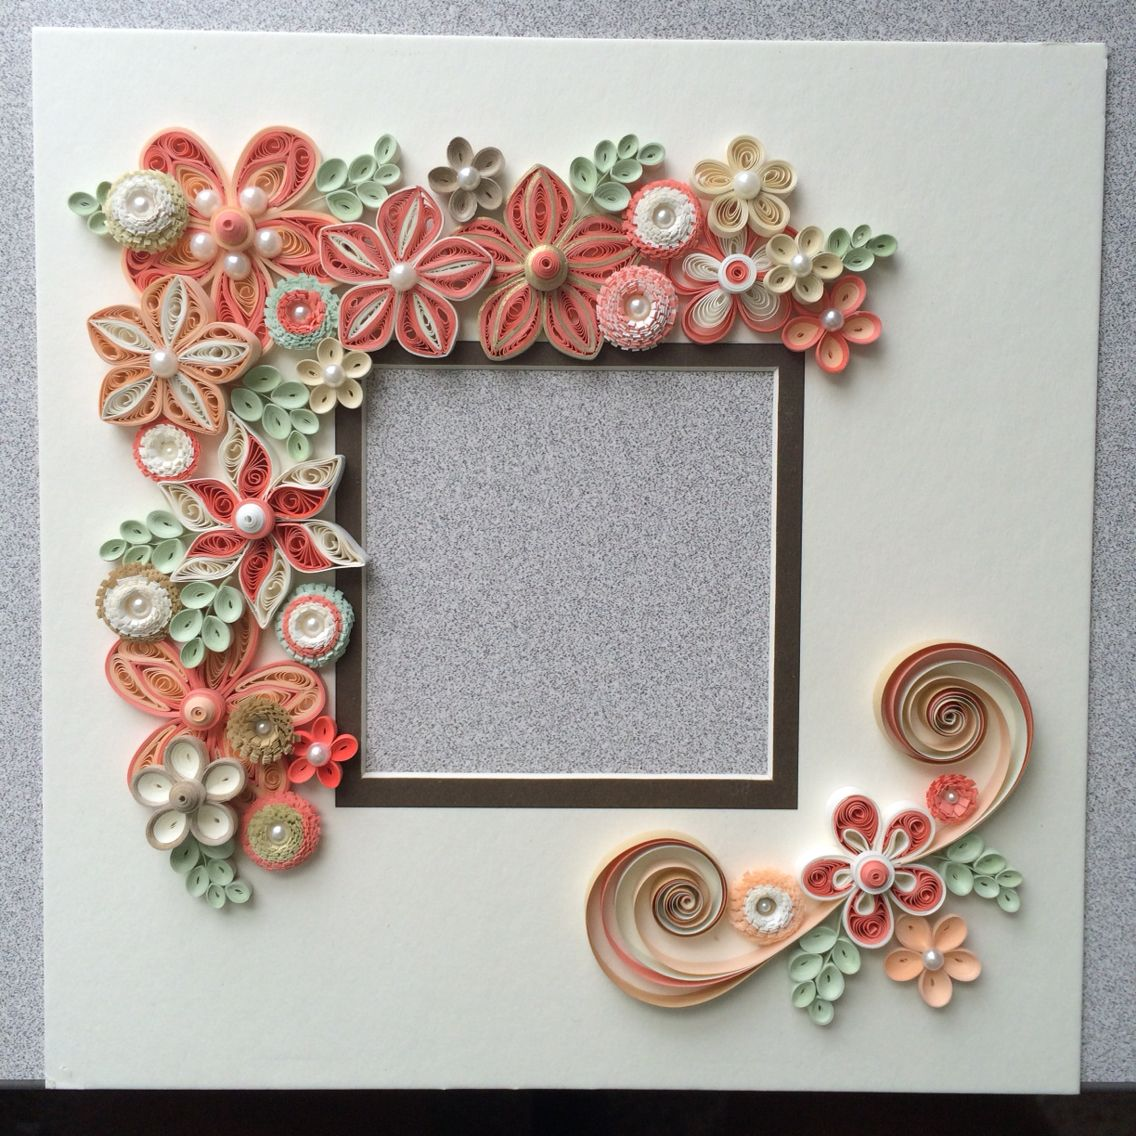 Quilled flowers for shadow box frame Quilled